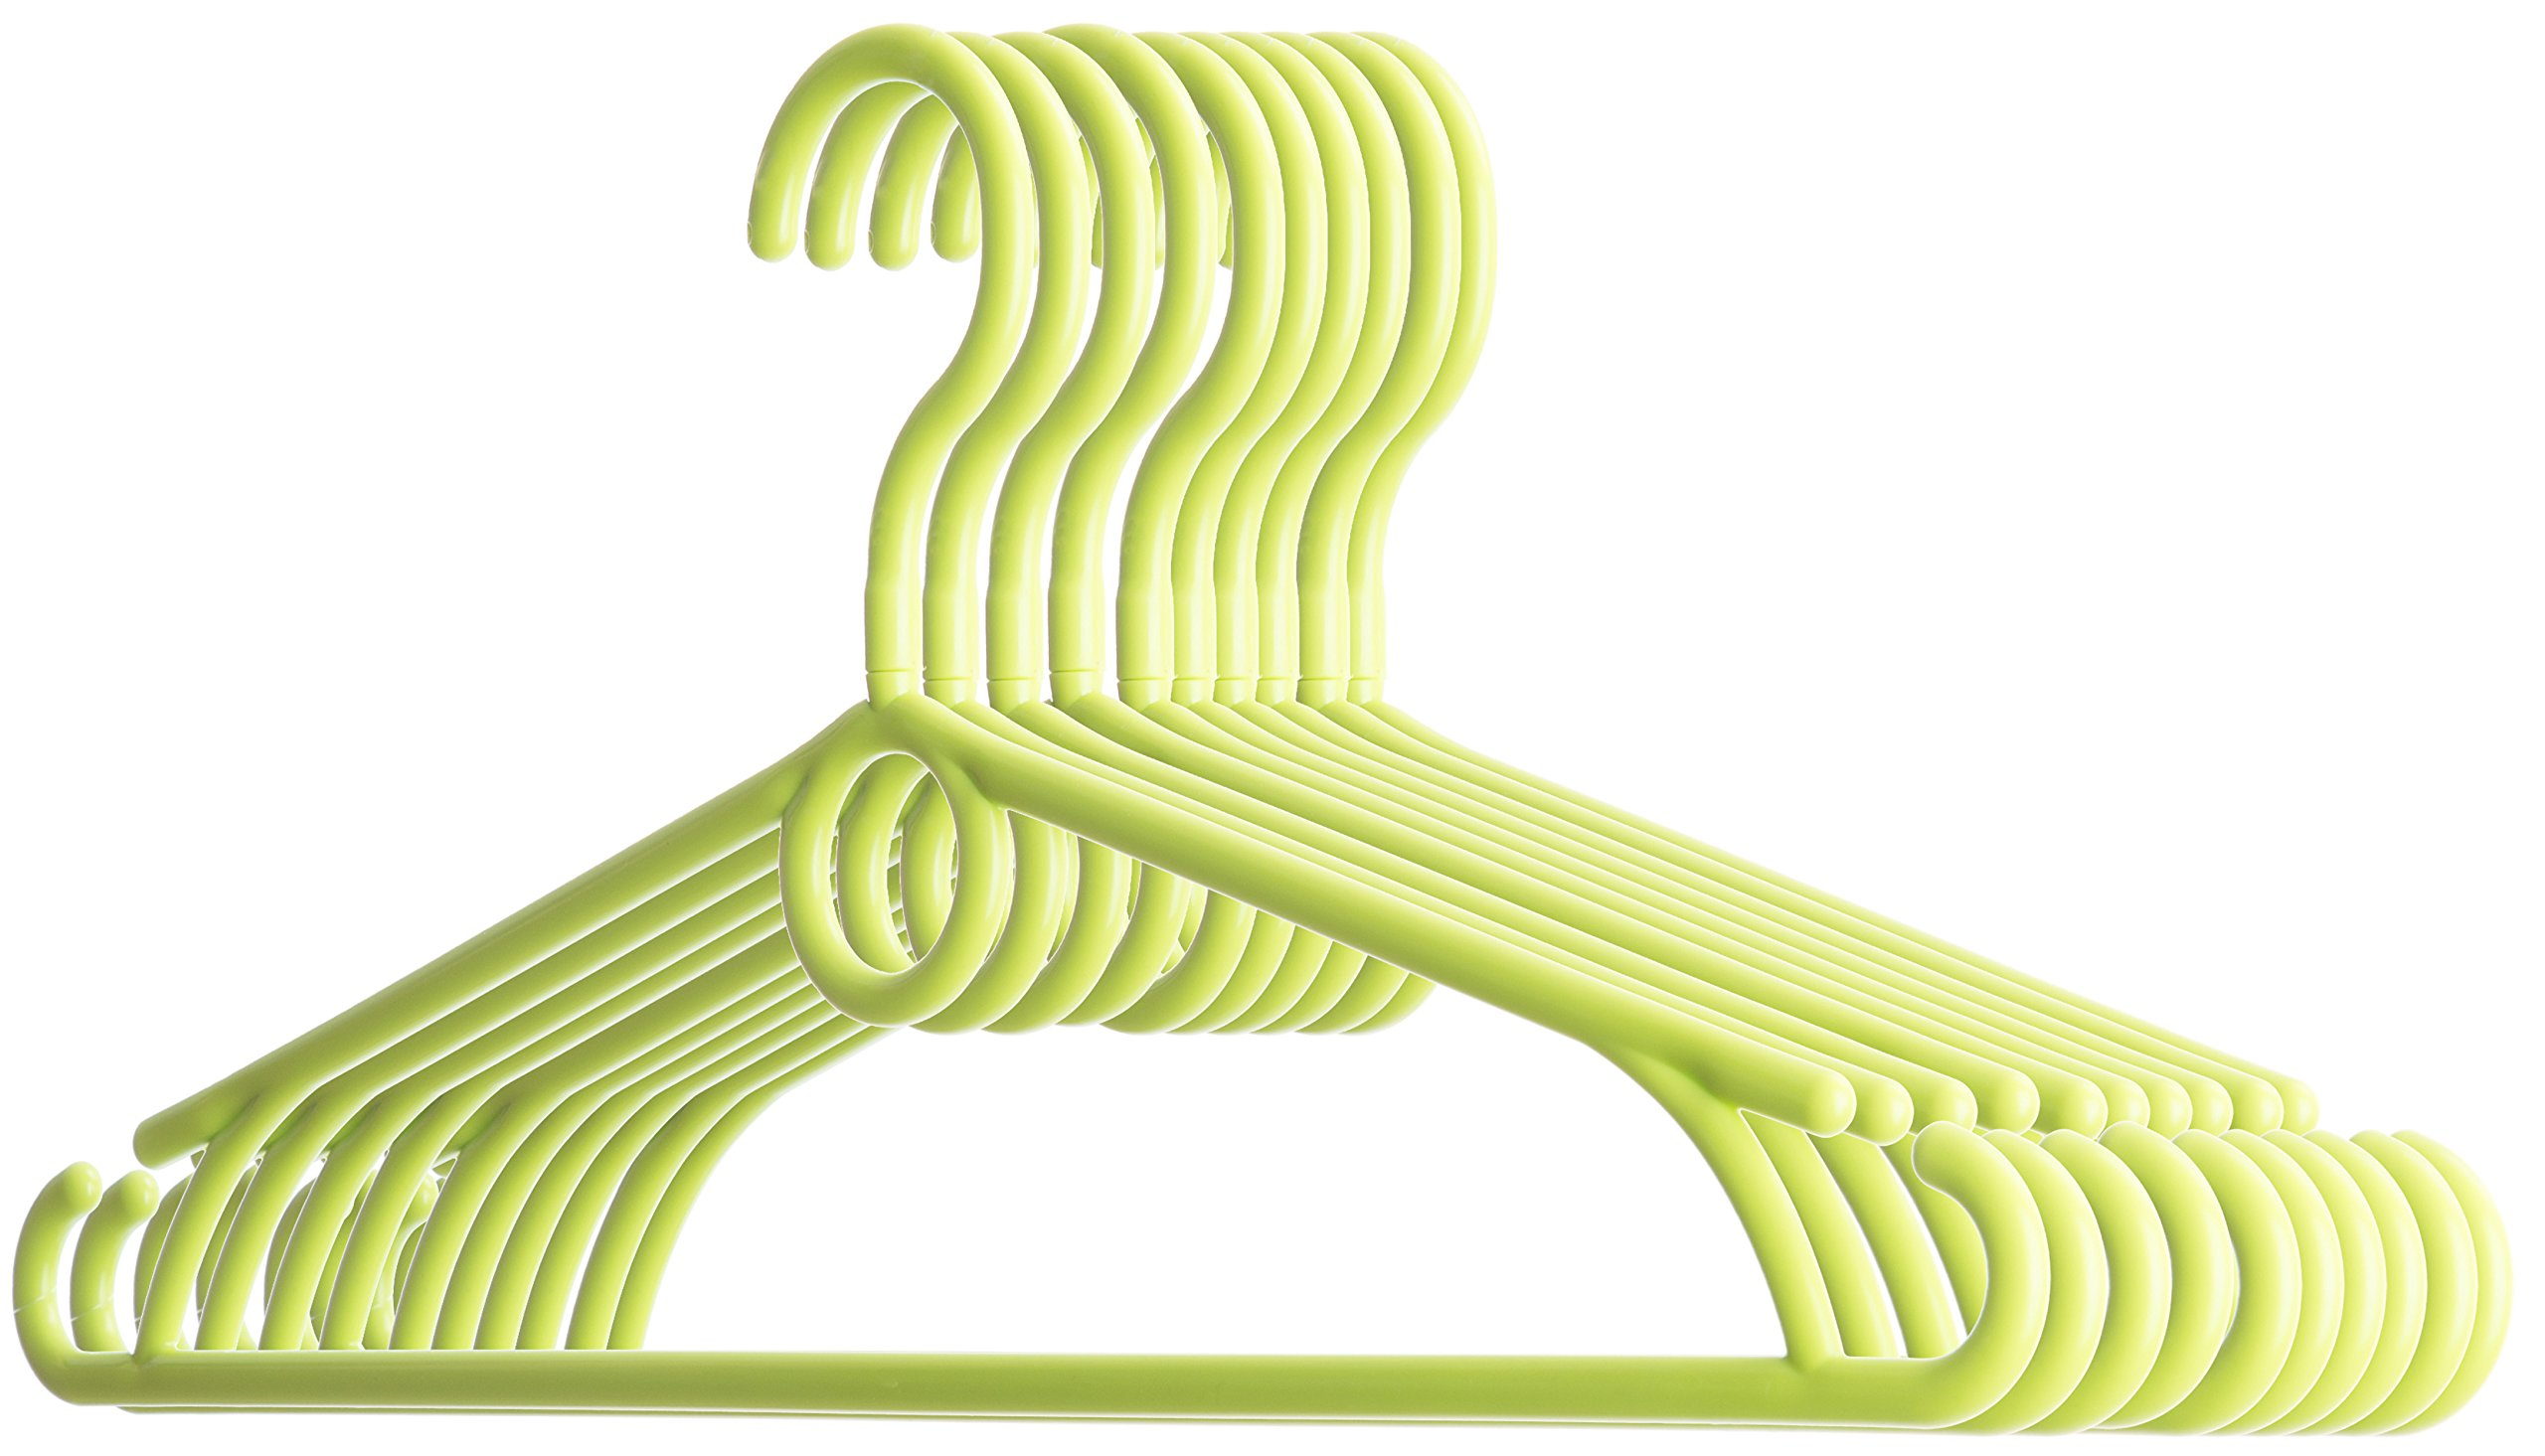 Dream-home Children Plastic Clothes Hangers - 360°Swivel Hook - Strong & Durable - Space Saving - Perfect for Shirts Pants Suits Dresses - Ideal for Household - Made in EU - Set of 20 - LIME